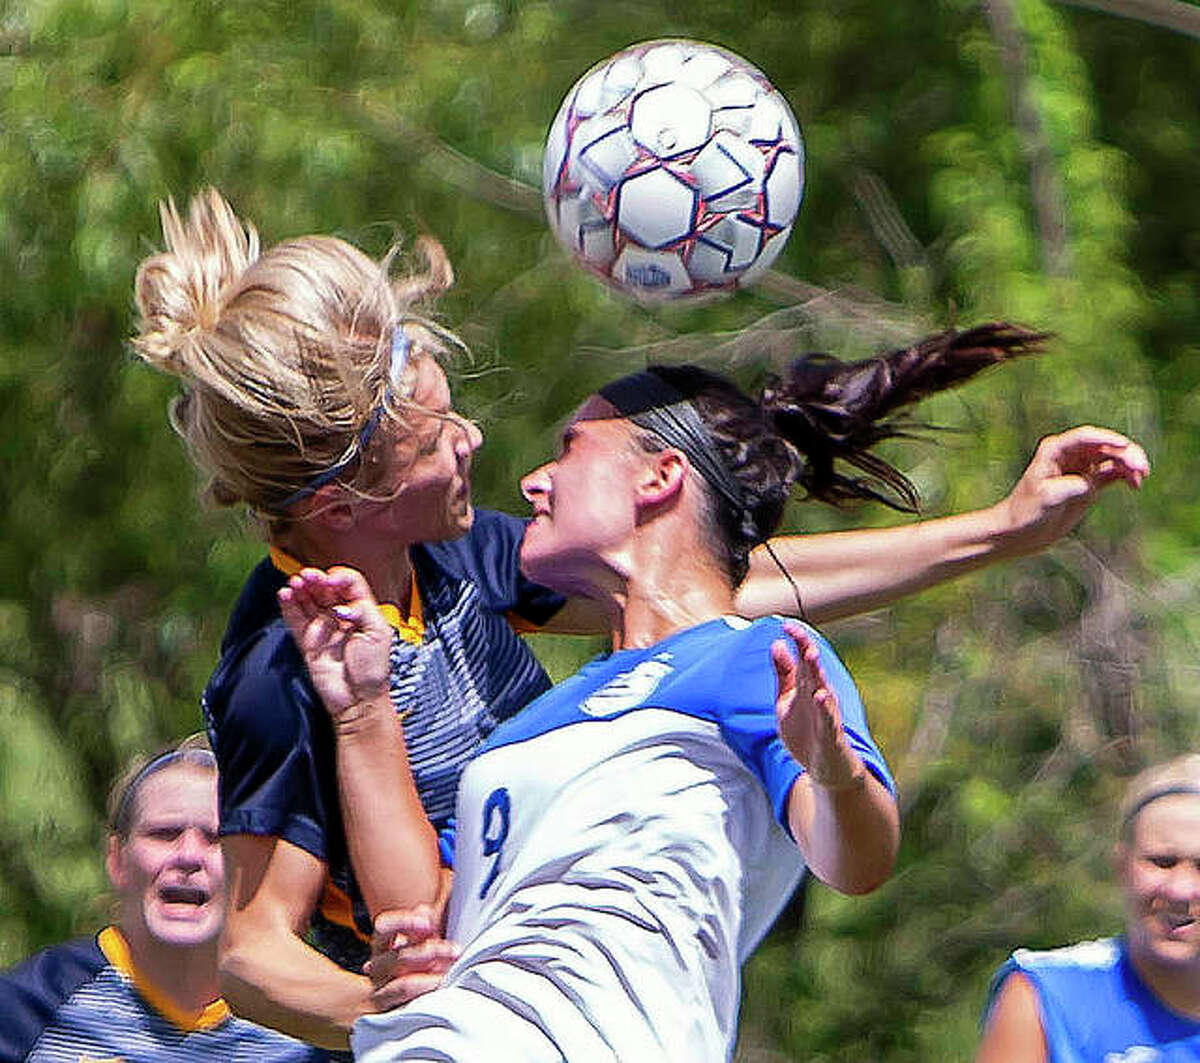 LCCC's Paige Bauer (9) battles for a header with a Johnson County player during Sunday action at LCCC. The Trailblazers were scheduled to play host to Illinois Central College Thursday, but the game was postponed because of field conditions following Wednesday night's rain.